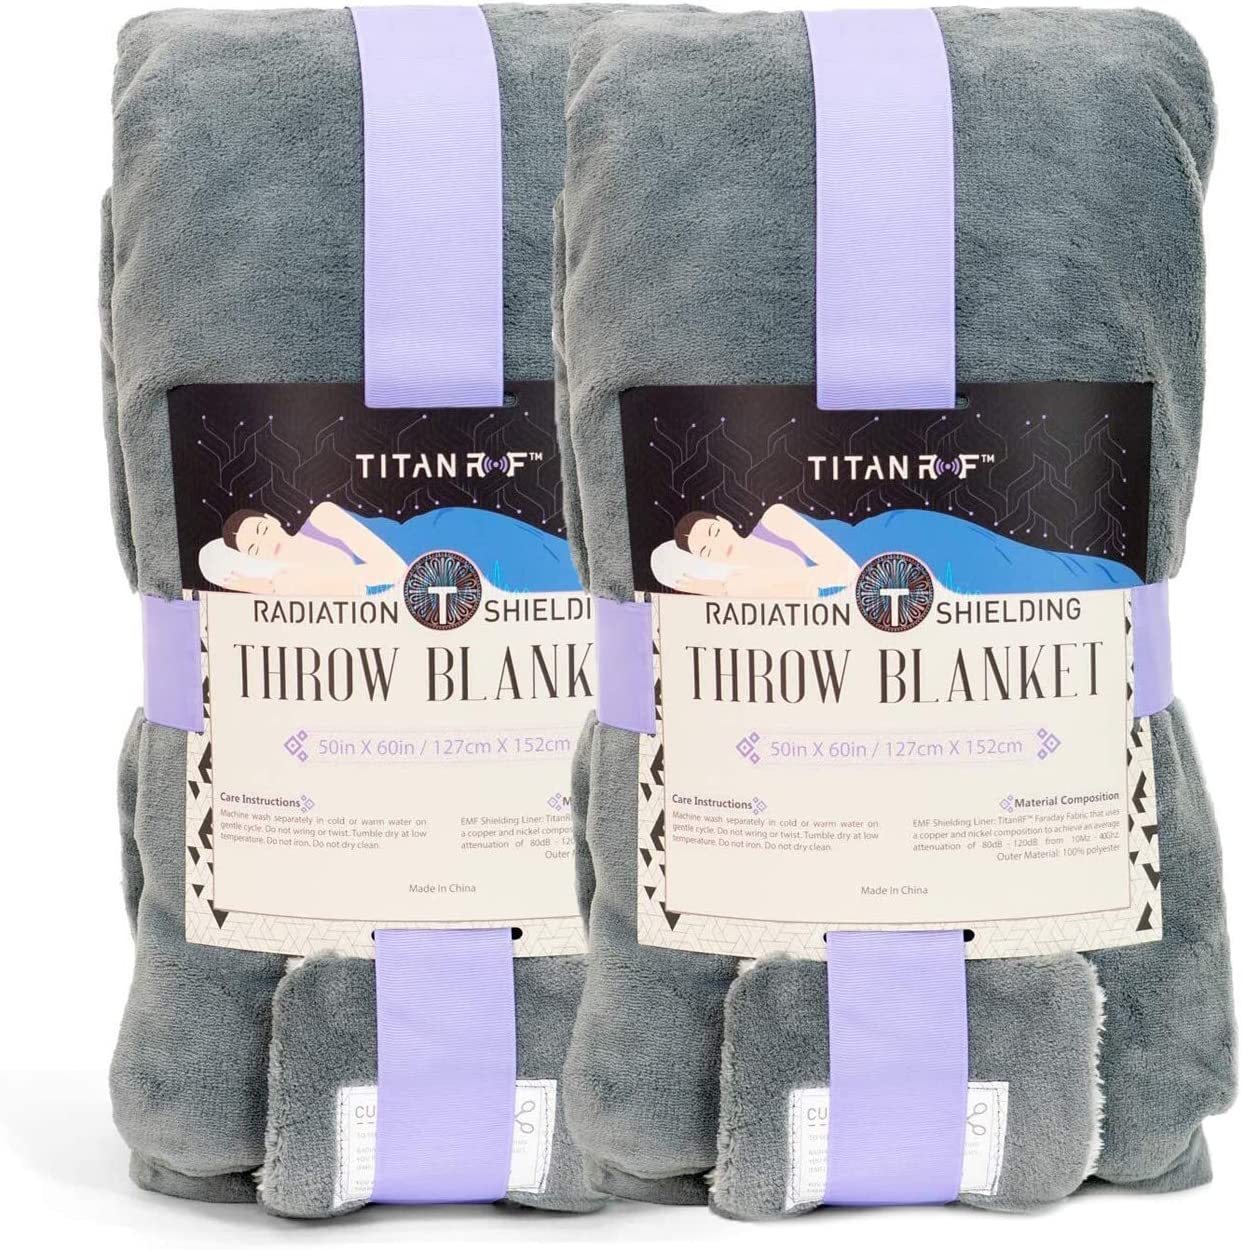 """[2-Pack] Mission Darkness TitanRF Radiation Shielding Throw Blanket 50"""" x 60"""" (127cm x 152cm) Ultra-Soft Materials Reversible Gray and White Blanket with Lab Certified EMF Radiation Protection Liner: Kitchen & Dining"""